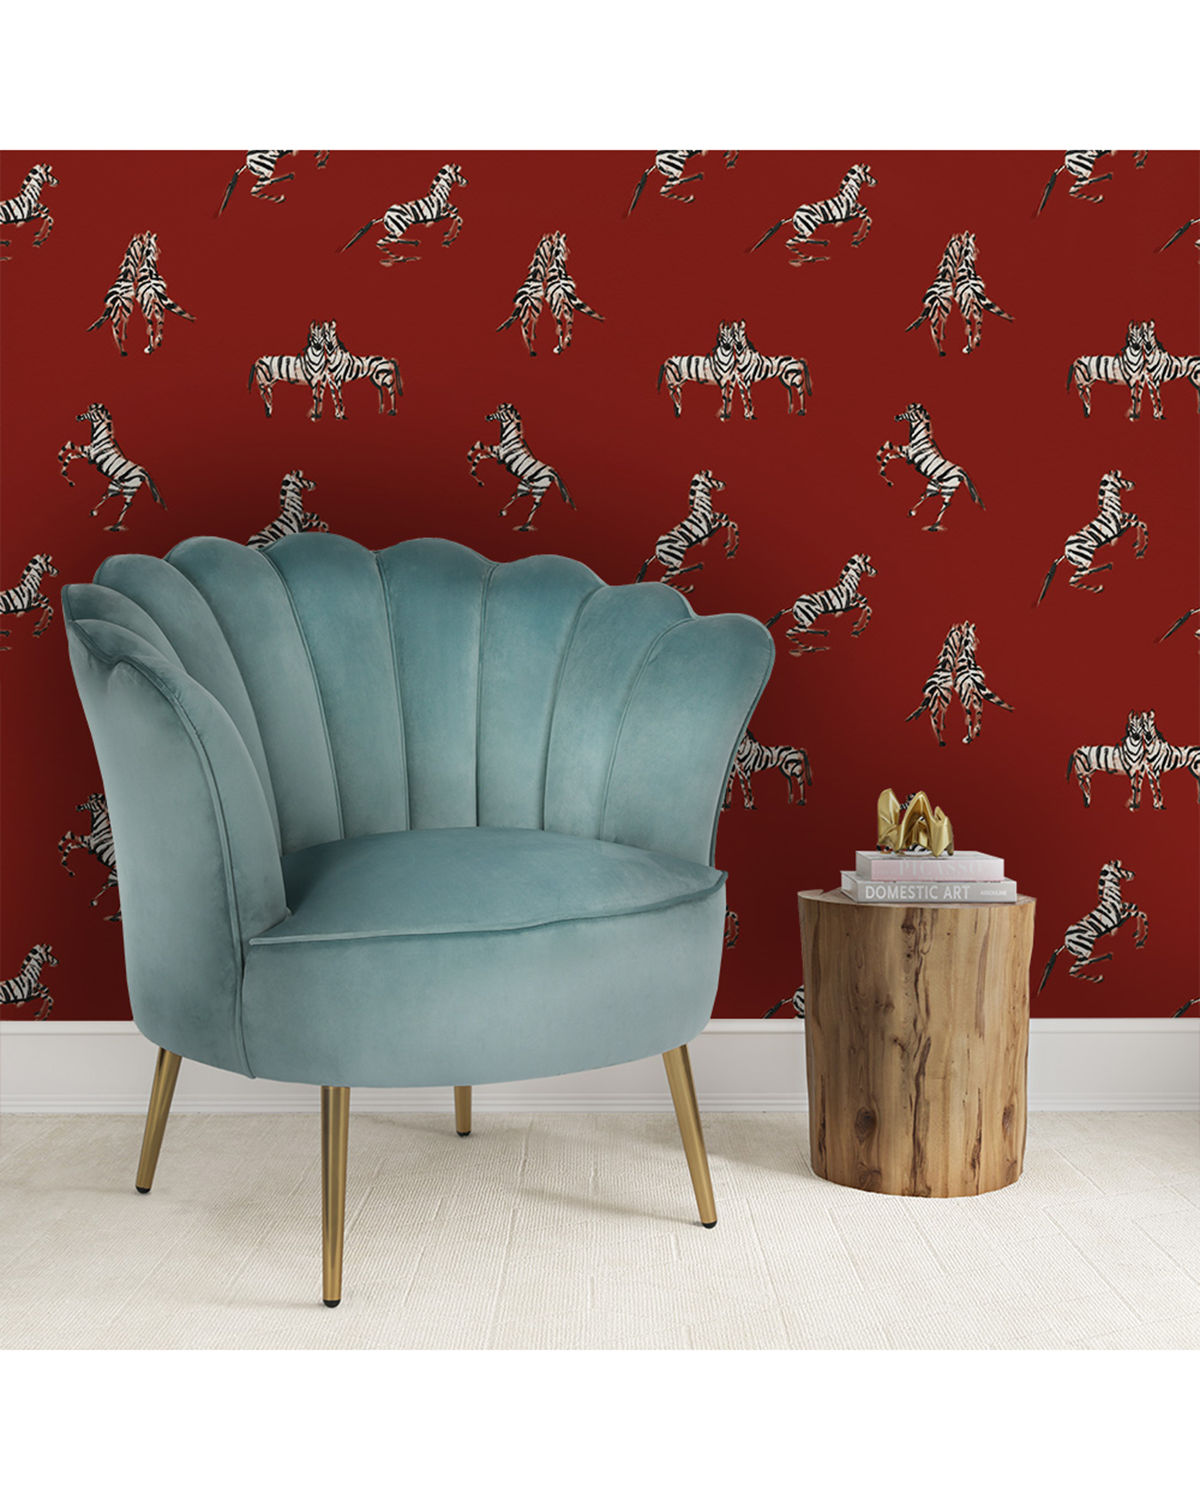 Zebras In Love Removable Wallpaper